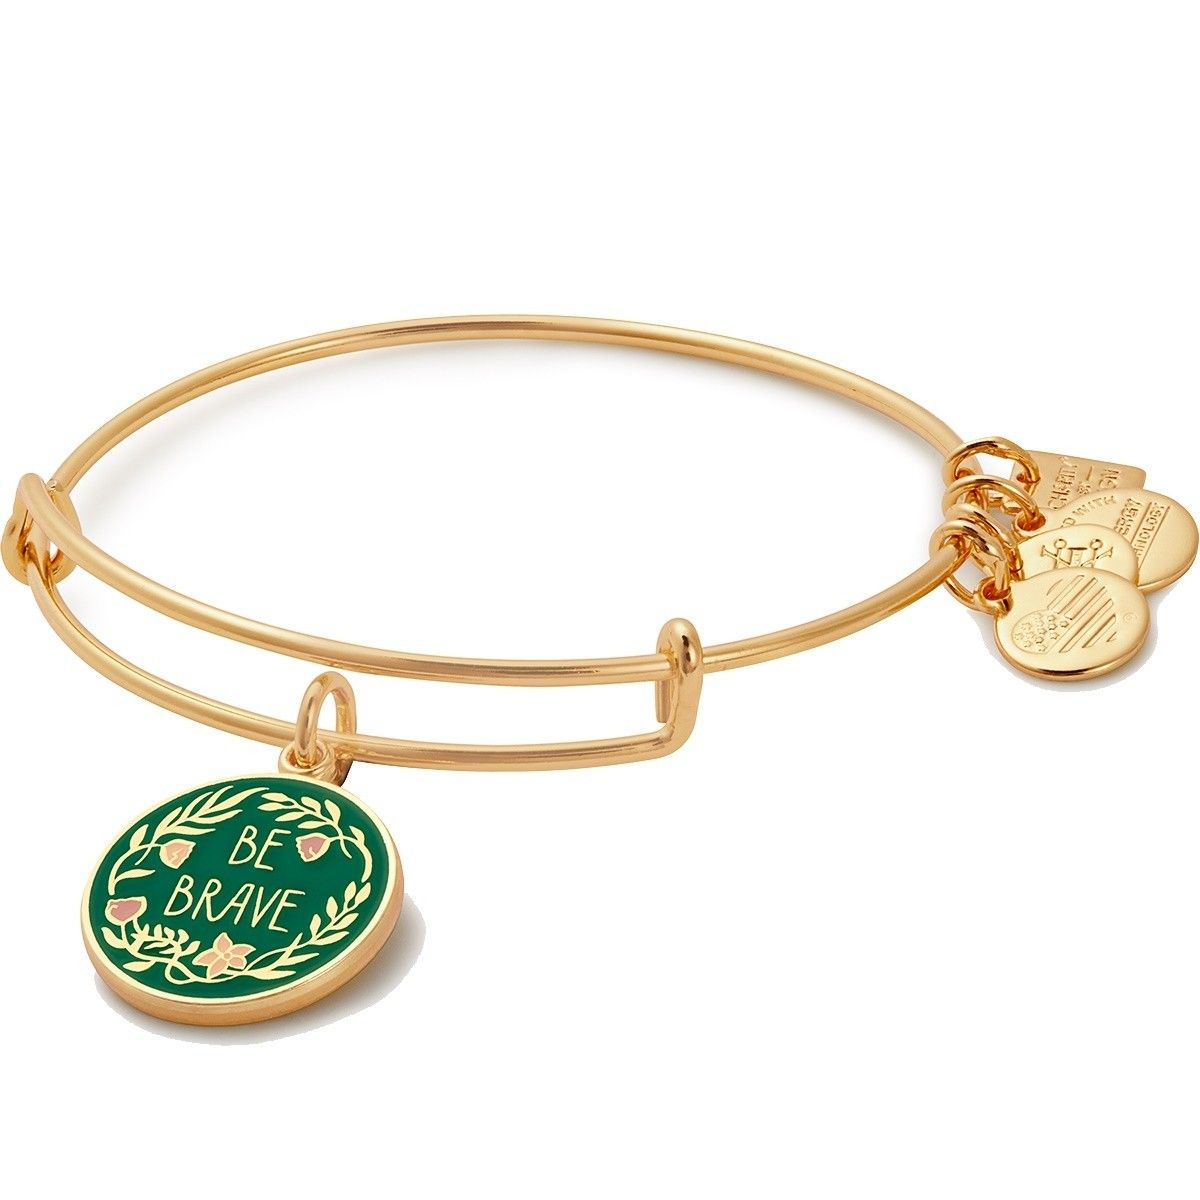 c64b94eee2bcb Be Brave Charm Bangle | Special Olympics in 2019 | Christmas ...